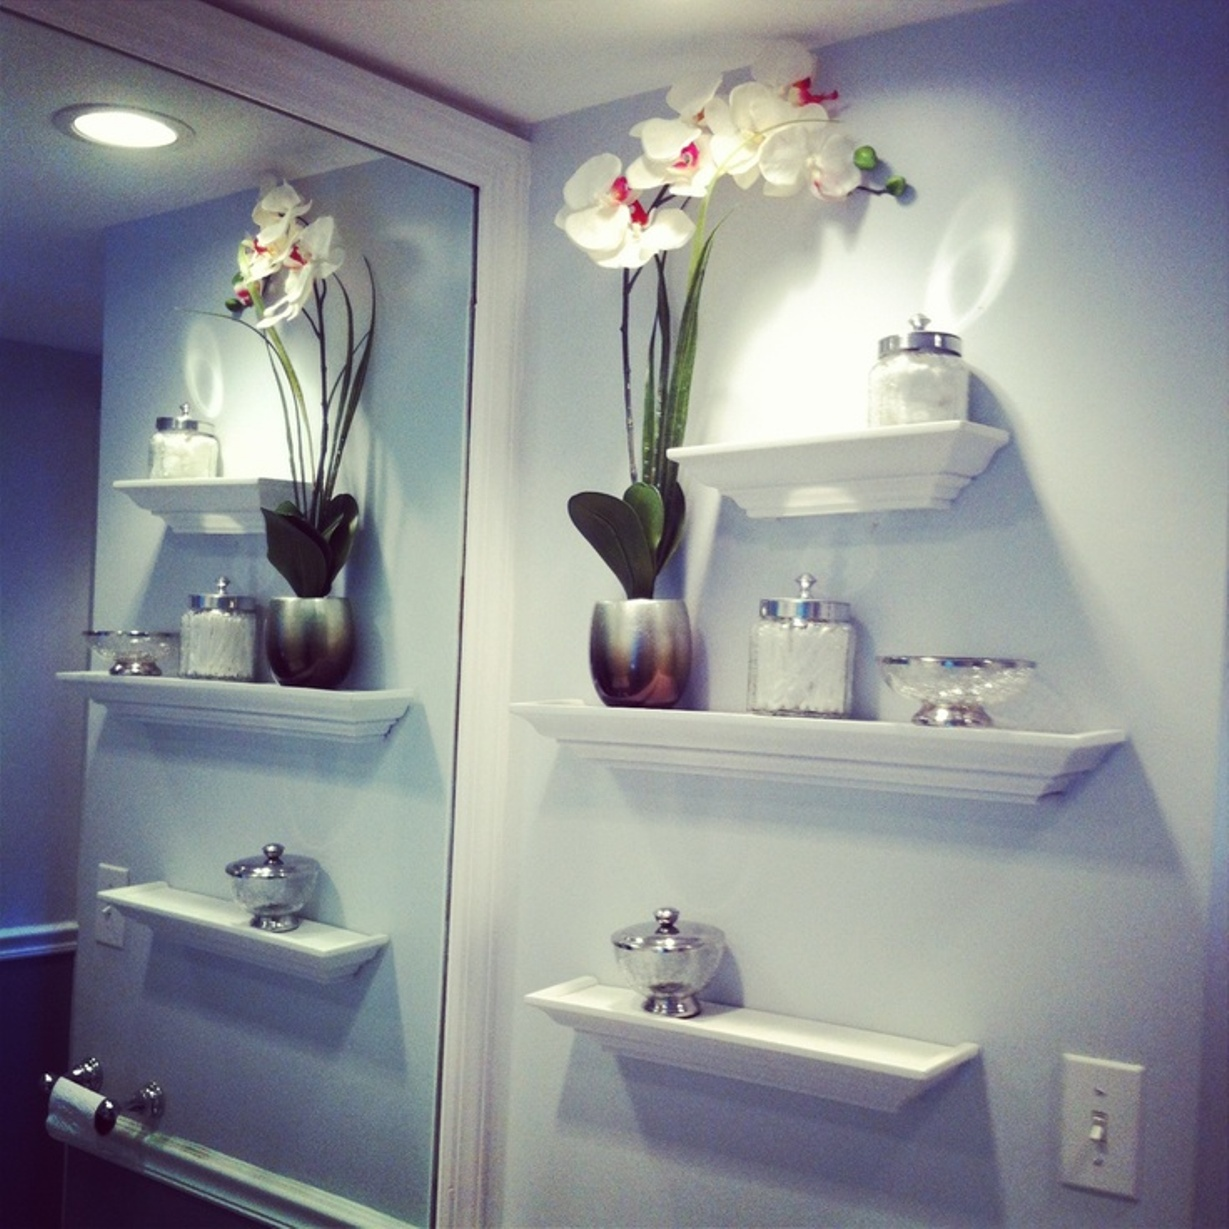 Best Bathroom Wall Shelving Idea to Adorn Your Room | HomesFeed